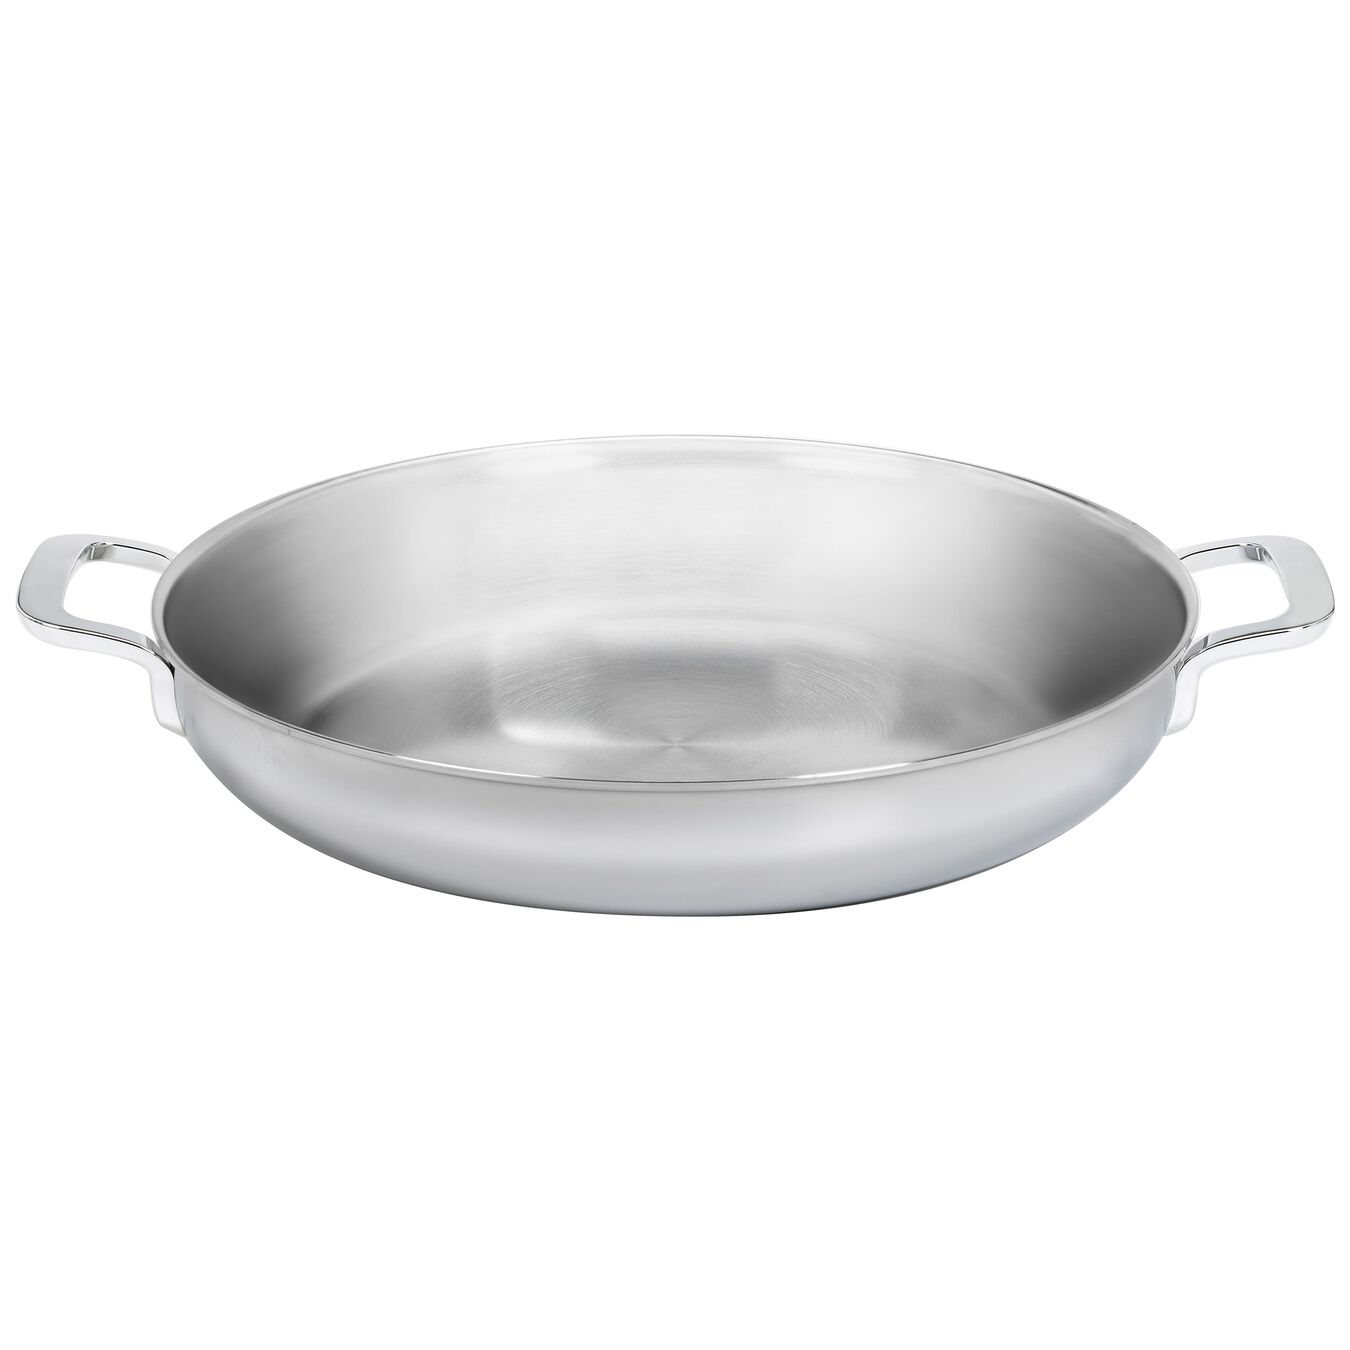 18/10 STAINLESS STEEL 28CM 7-PLY DOUBLE-HANDLED SKILLET,,large 2